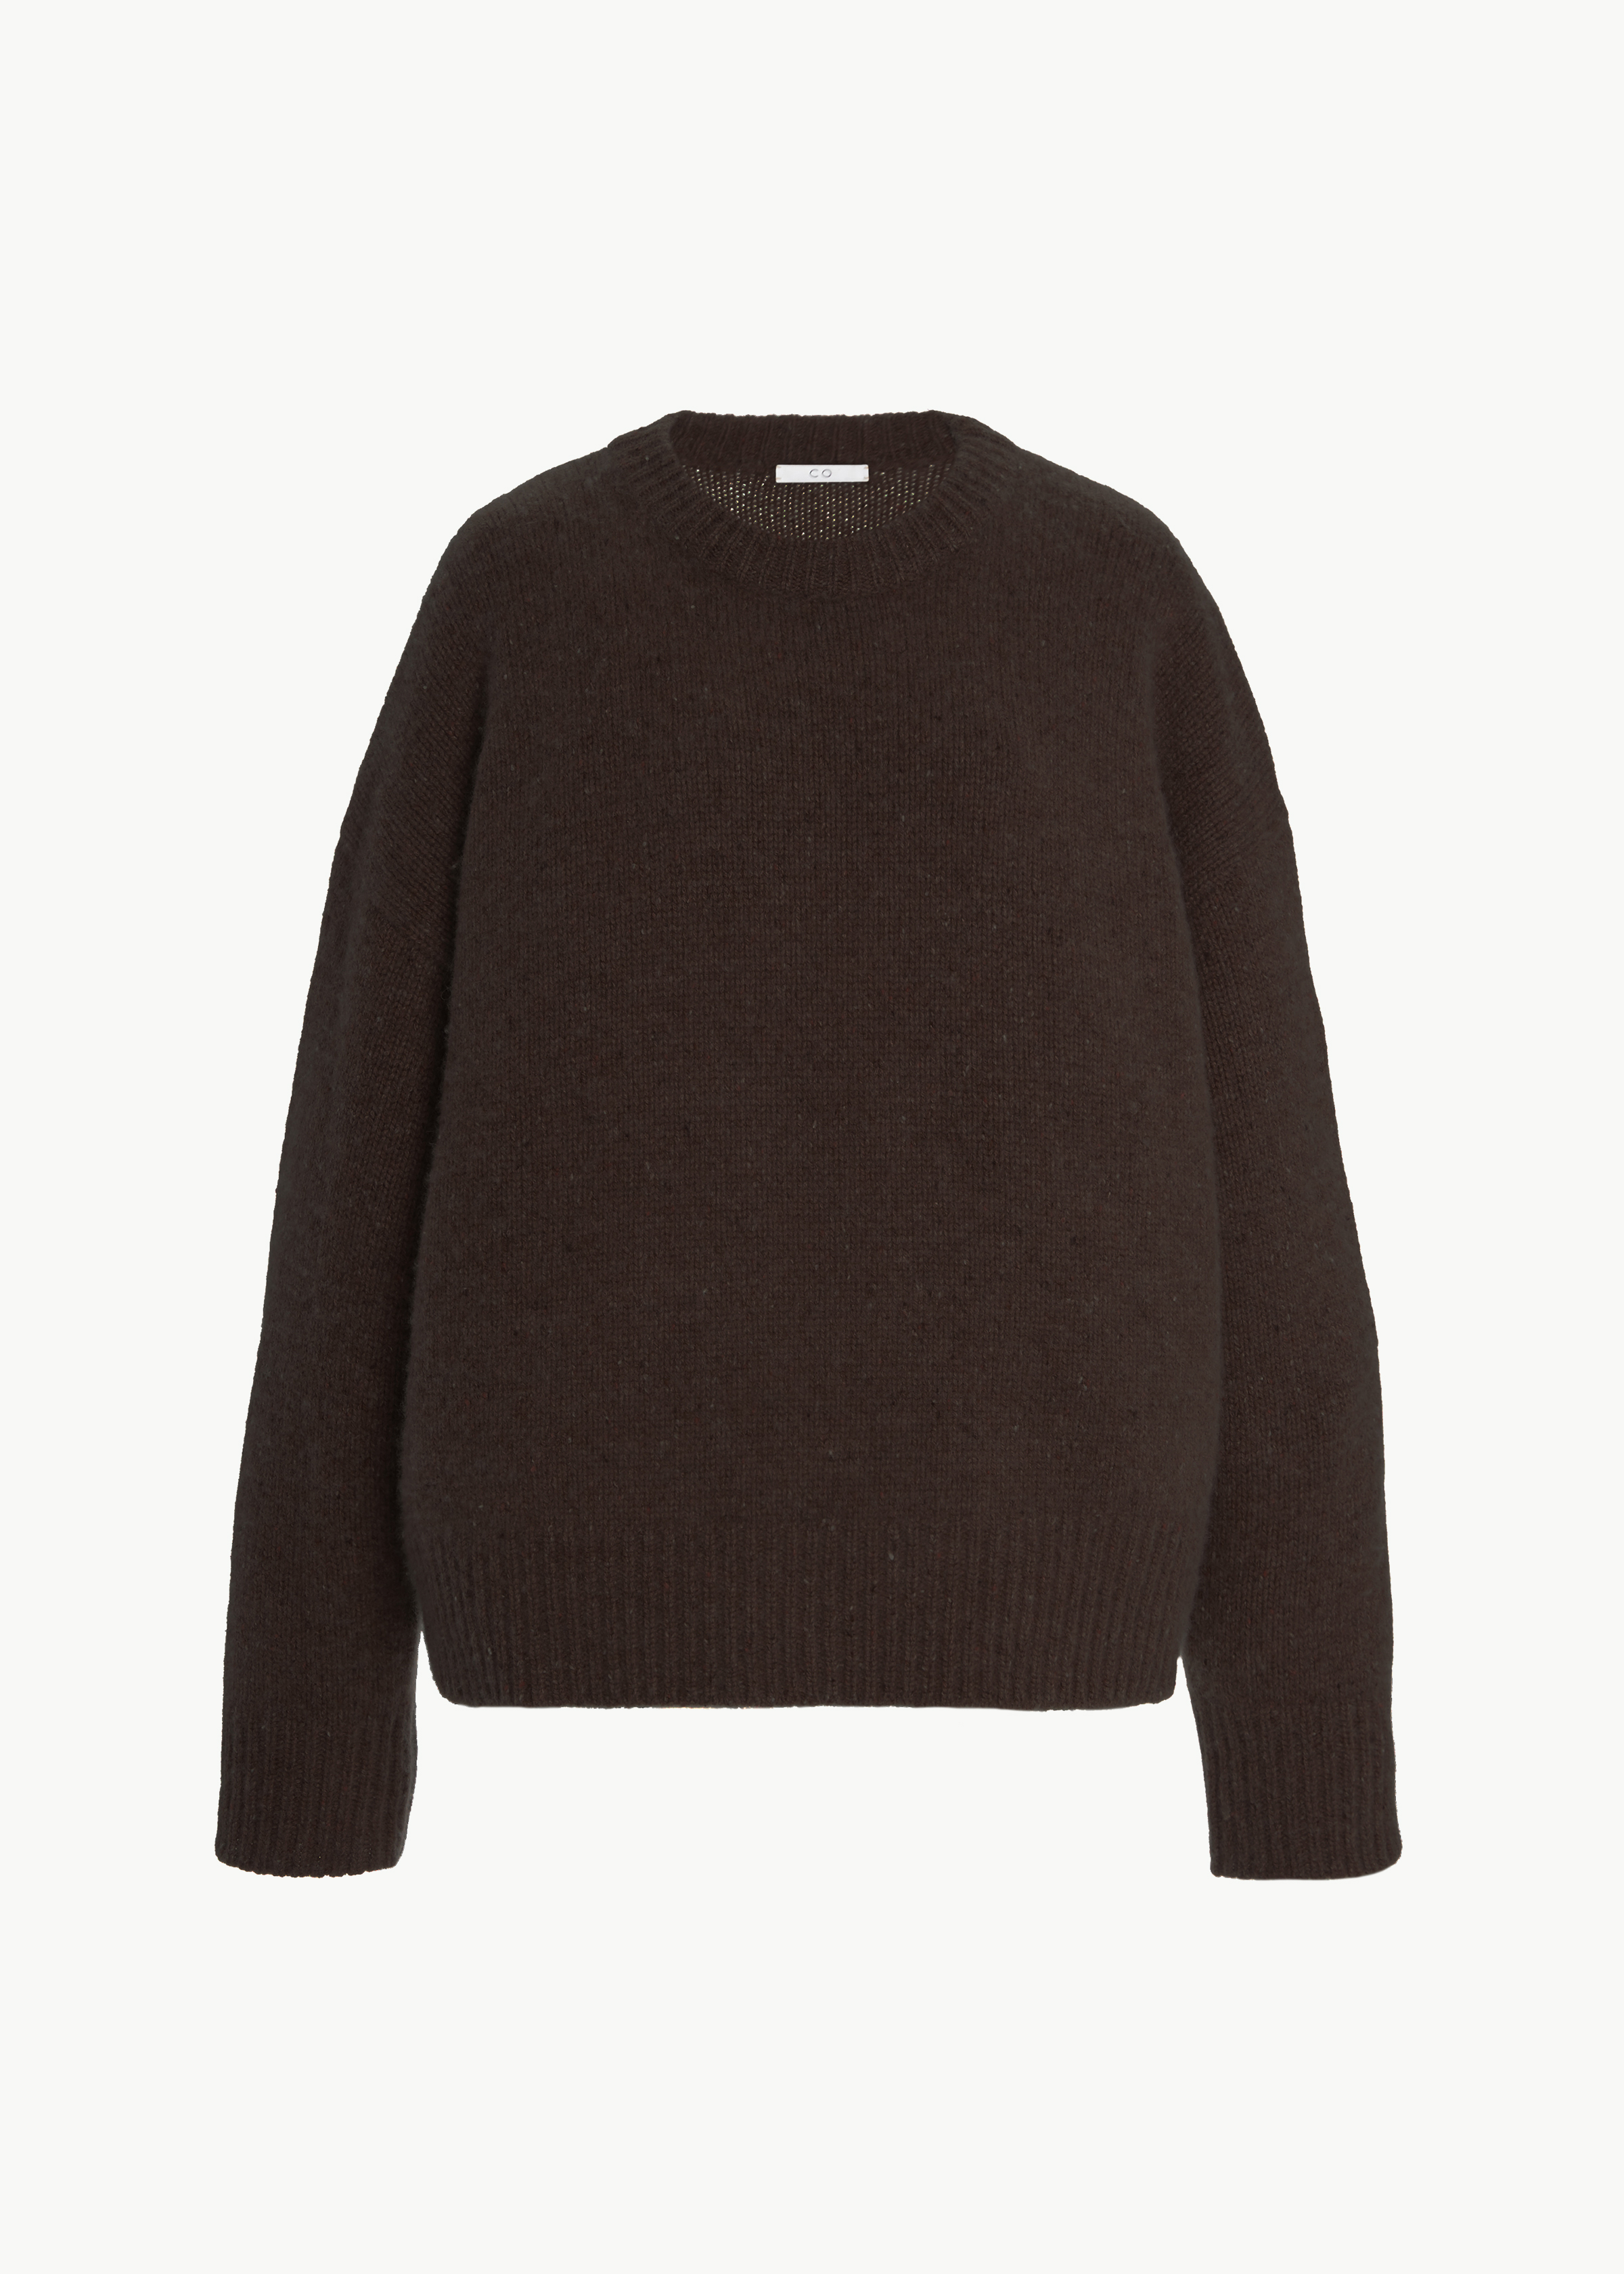 Crew Neck Sweater in Cashmere - Speckled Pecan in Umber Melange by Co Collections